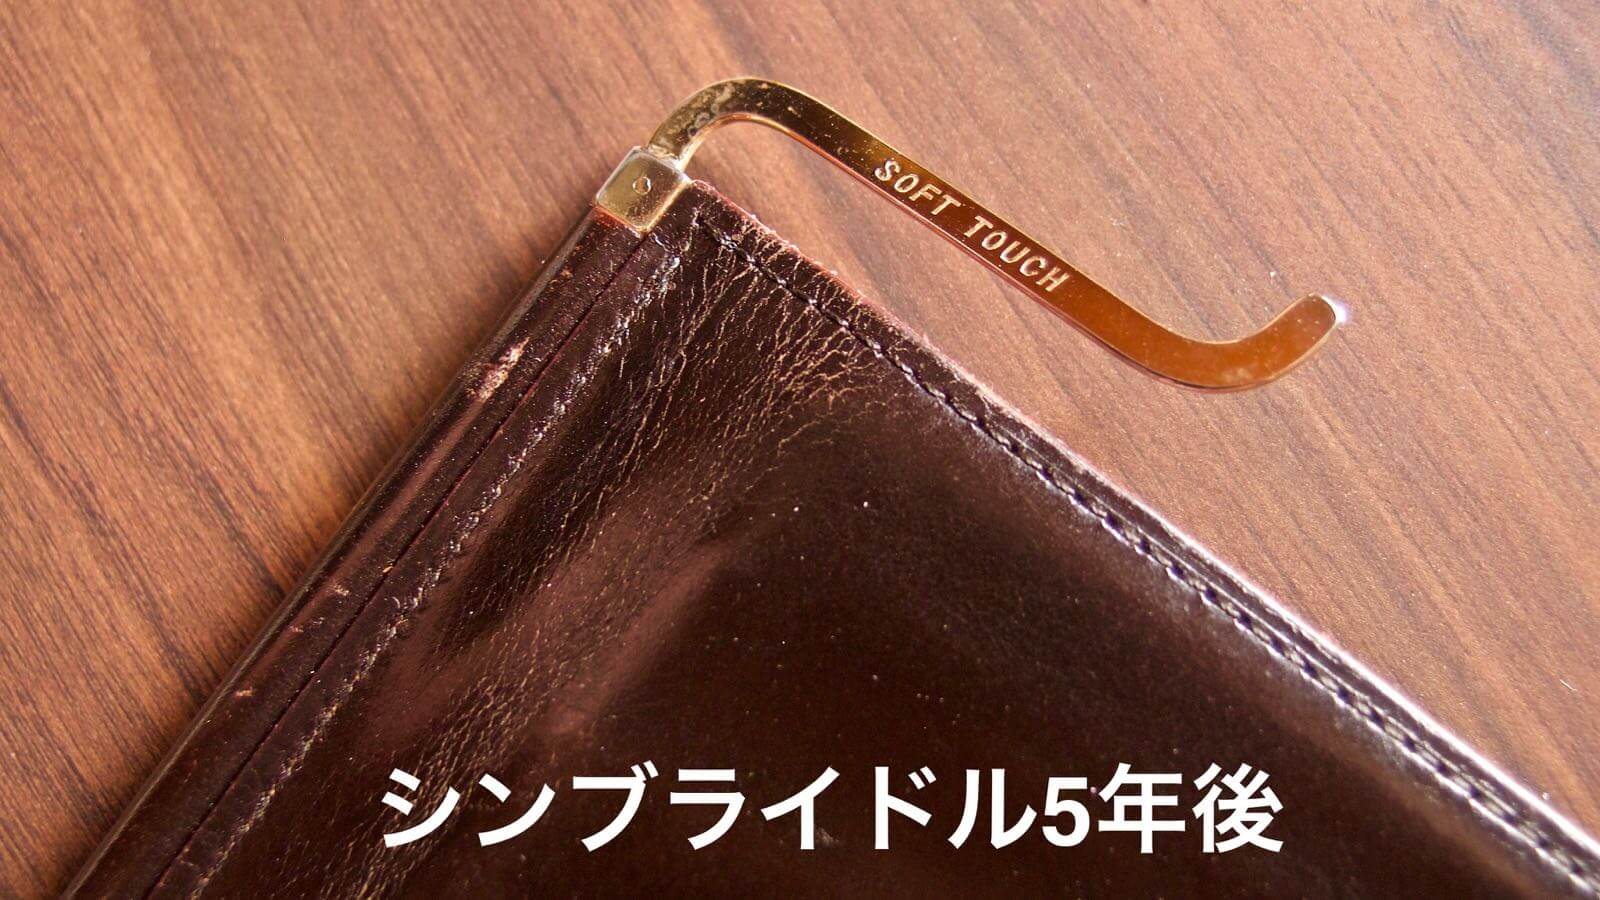 0037 Ganzo Shell Code Bank Business Card Holder 5 Years Aging 14